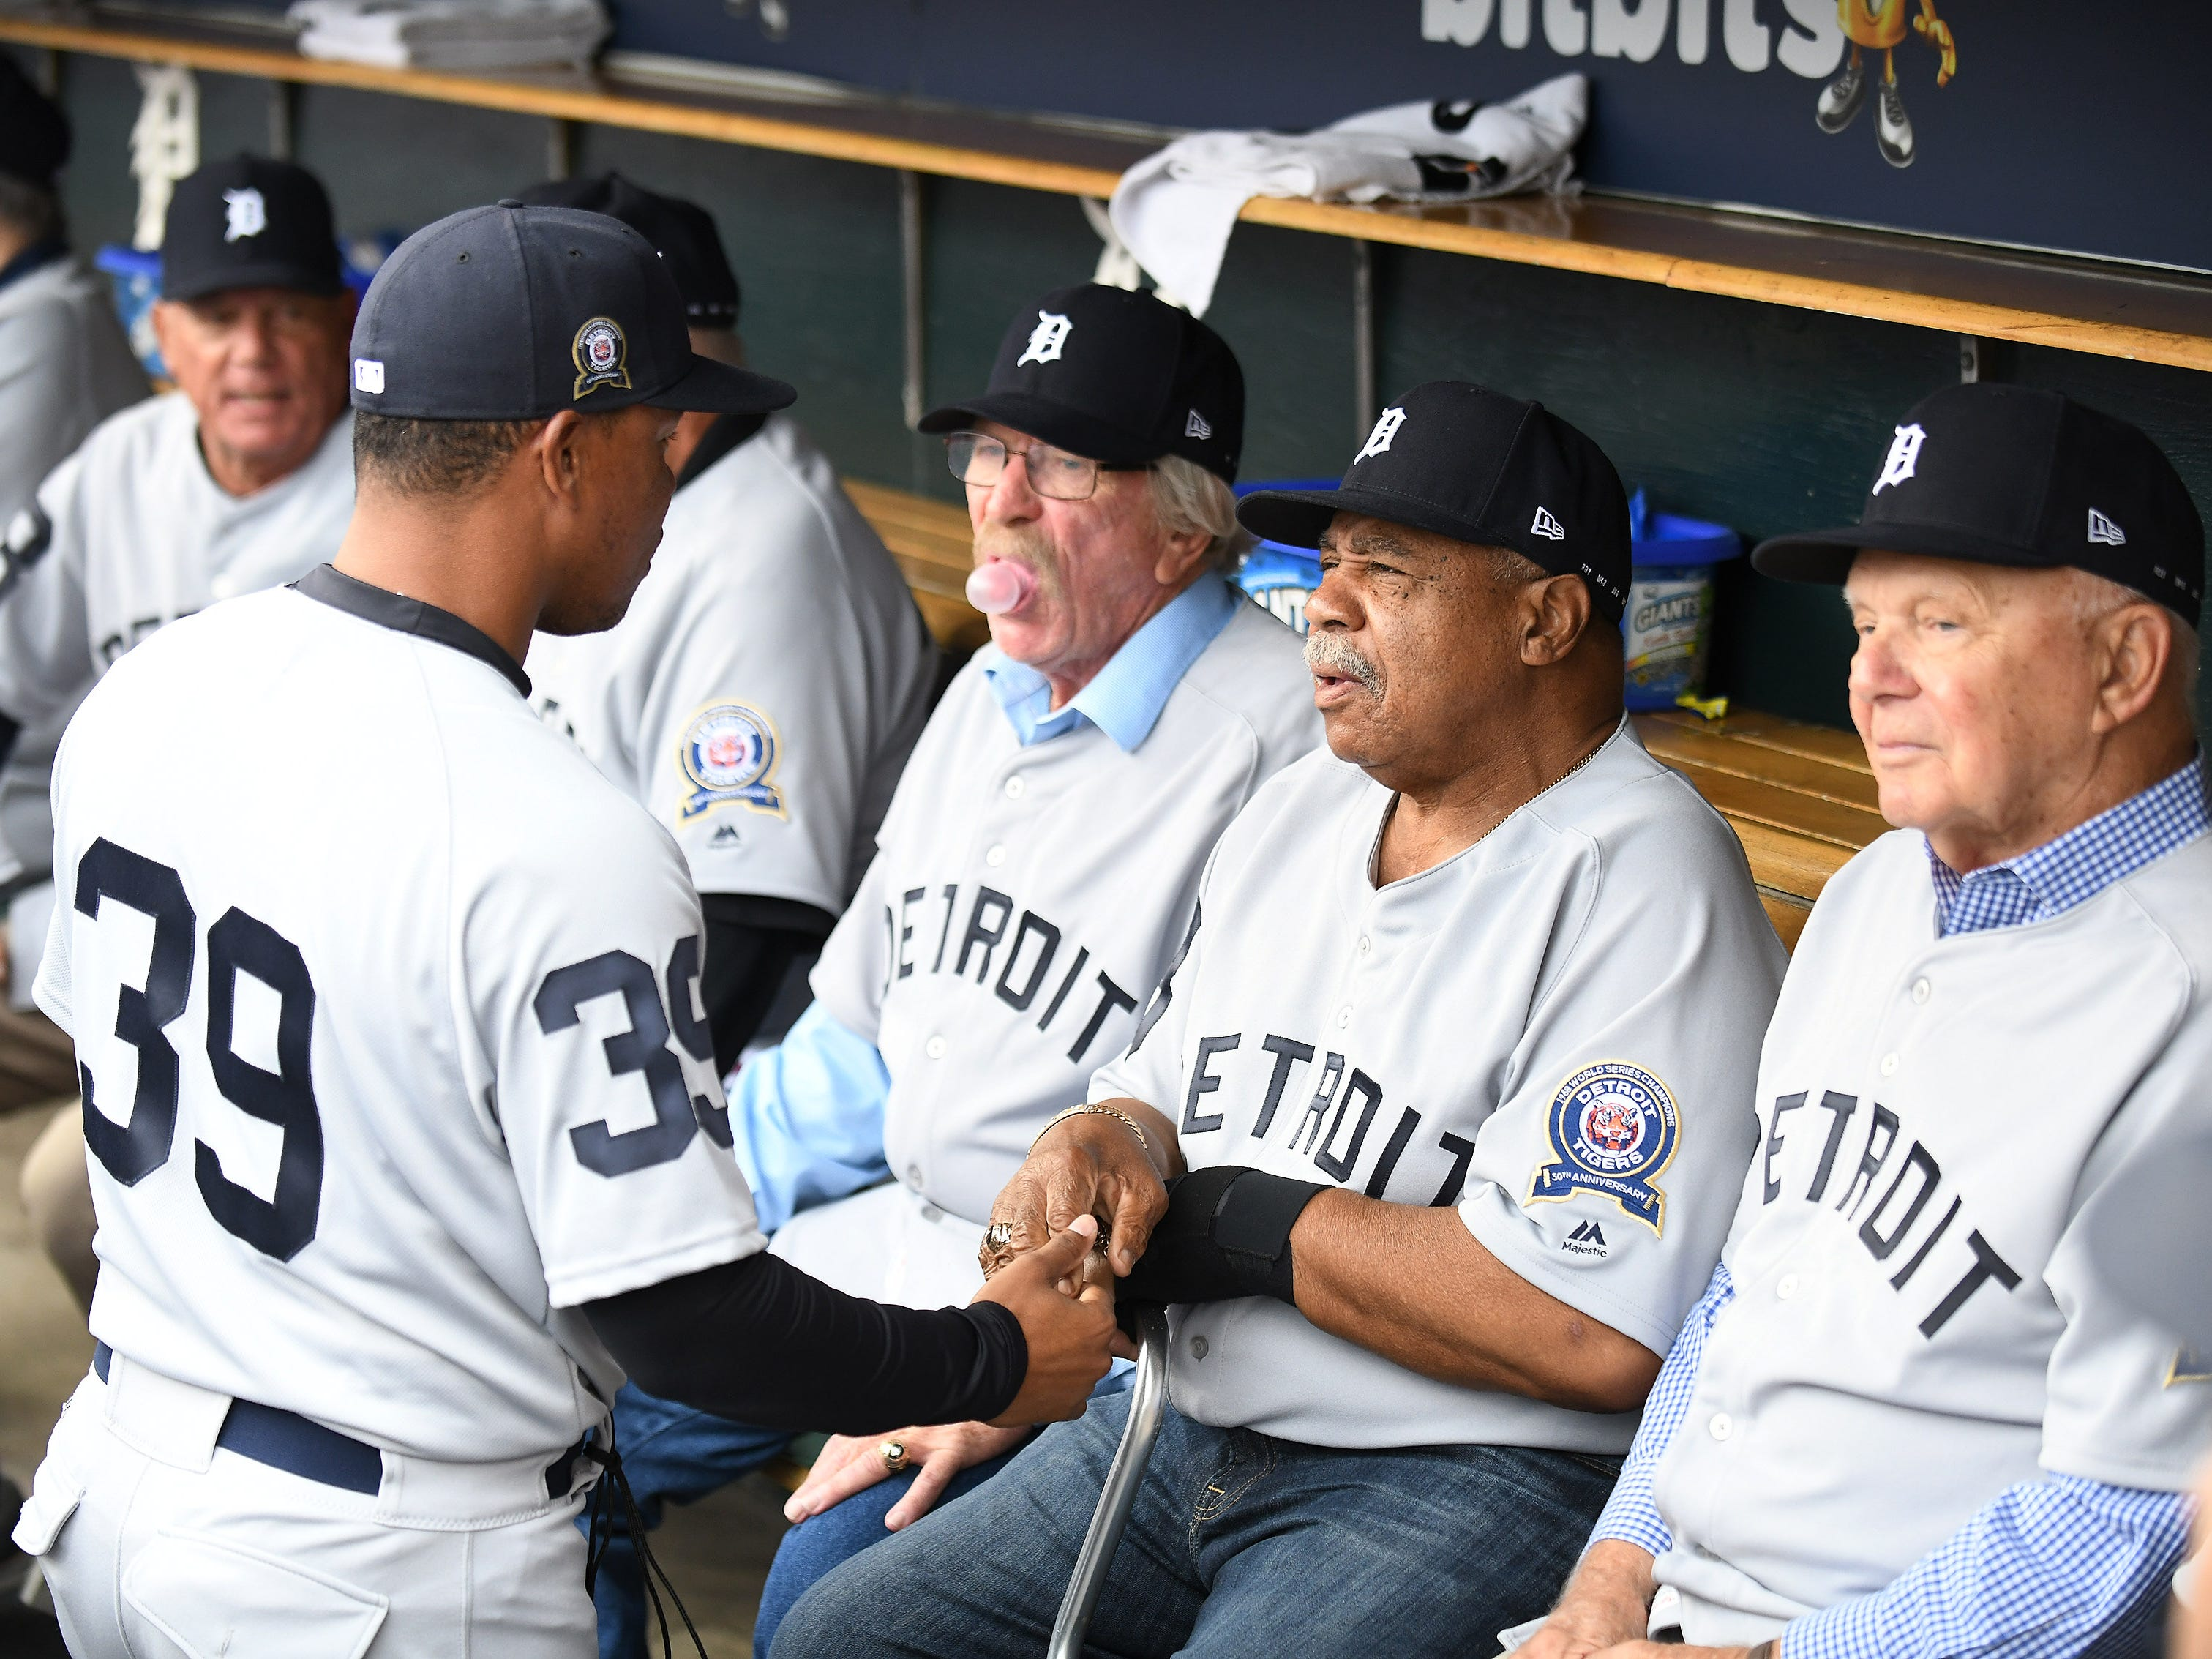 Willie Horton, second from right, talks with Tigers first-base coach Ramon Santiago during the ceremony. At far right is Dick Tracewski, and center blowing bubble is Tommy Matchick.